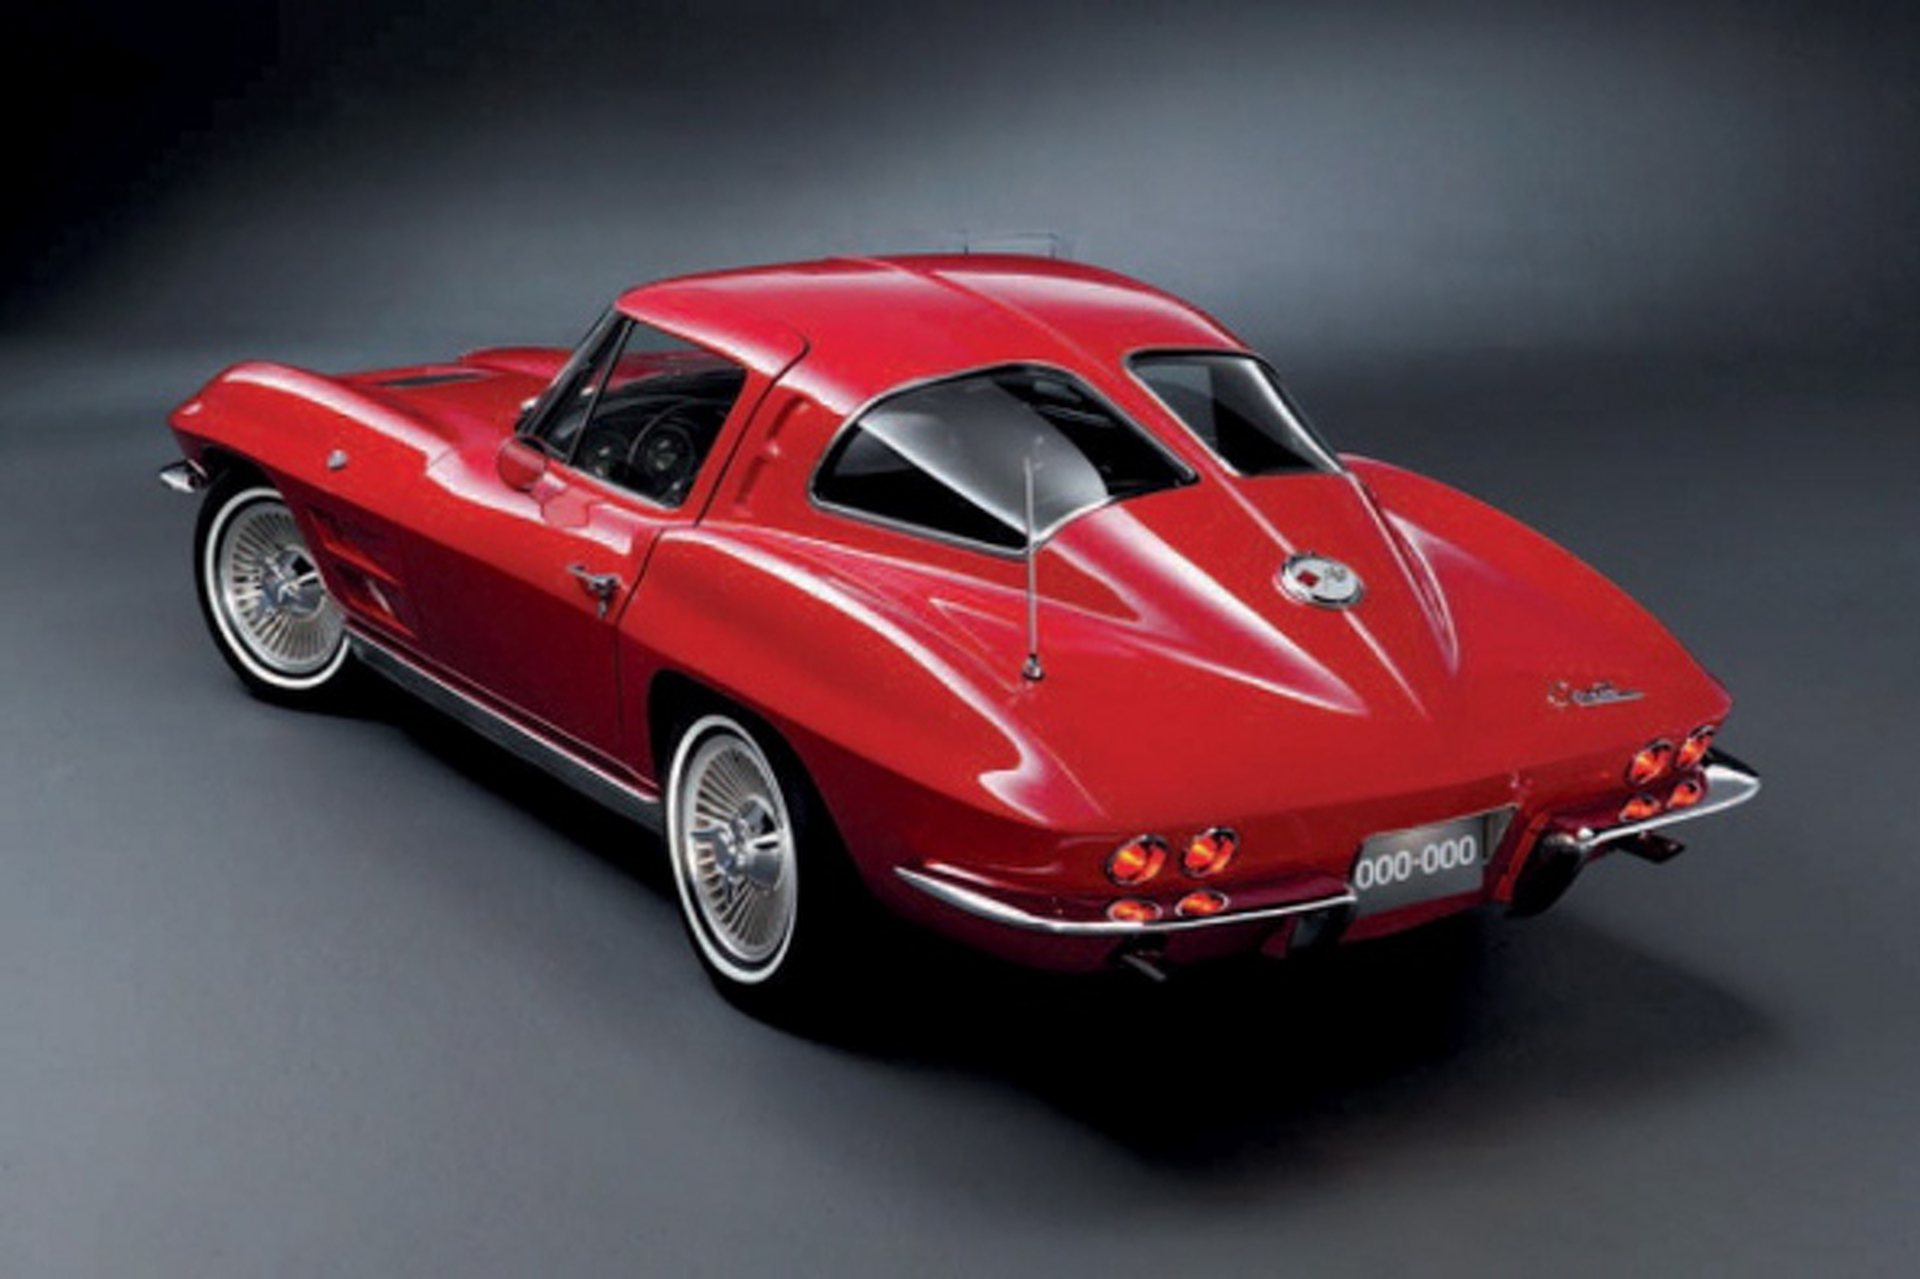 Still a Steal? Corvette Pricing Through the Years